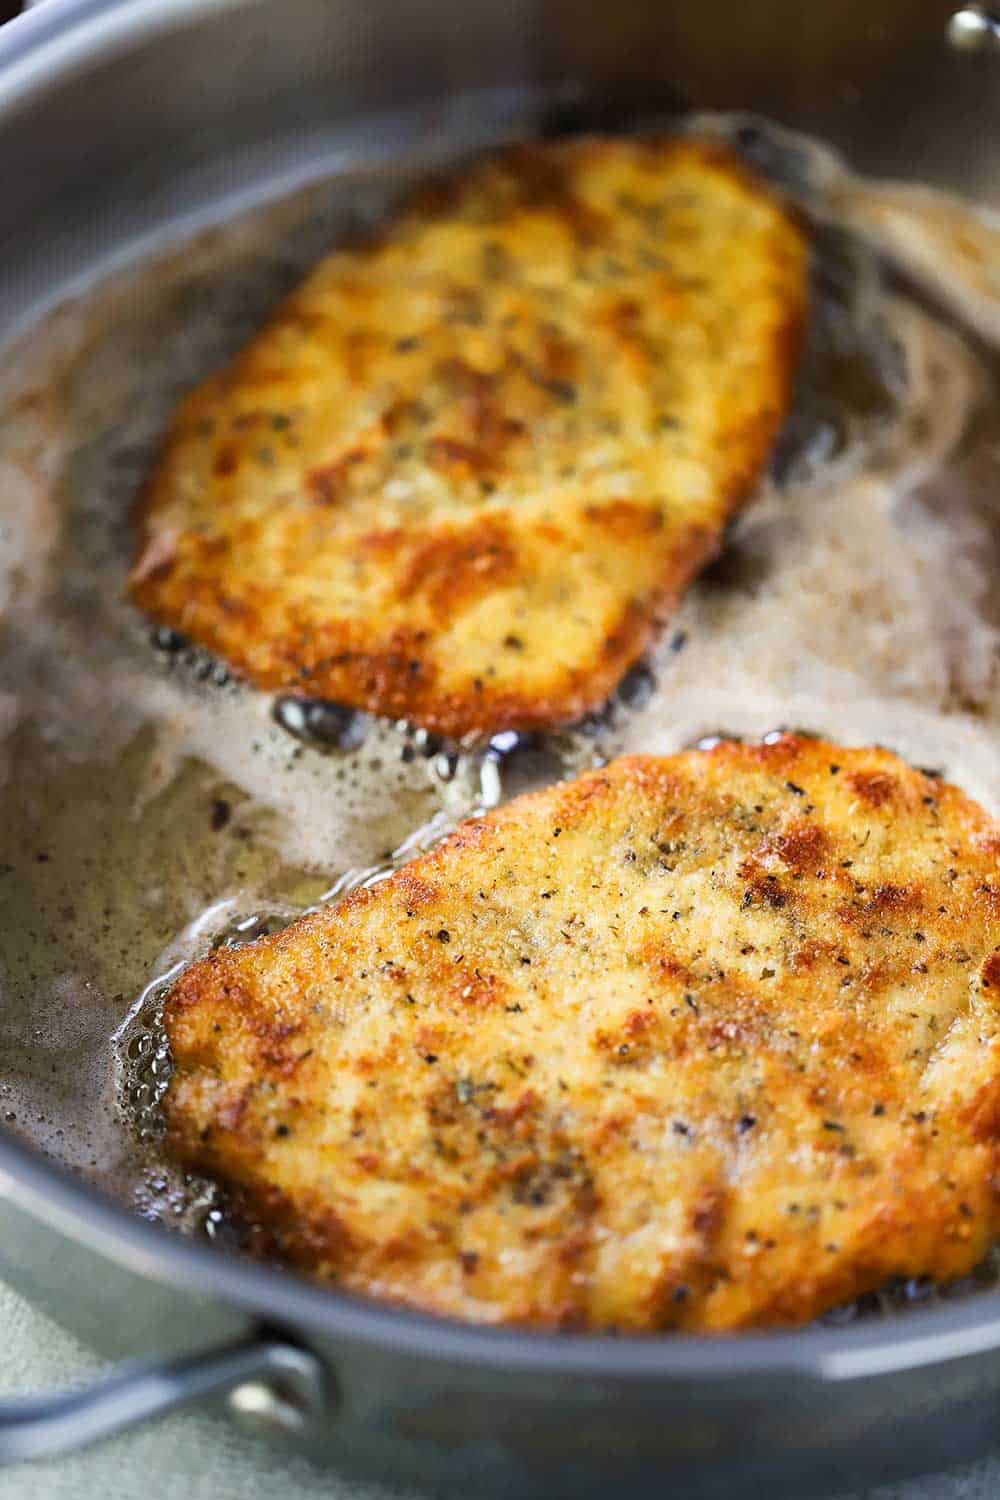 Two Parmesan chicken cutlets cooking in butter in a later steel skillet.